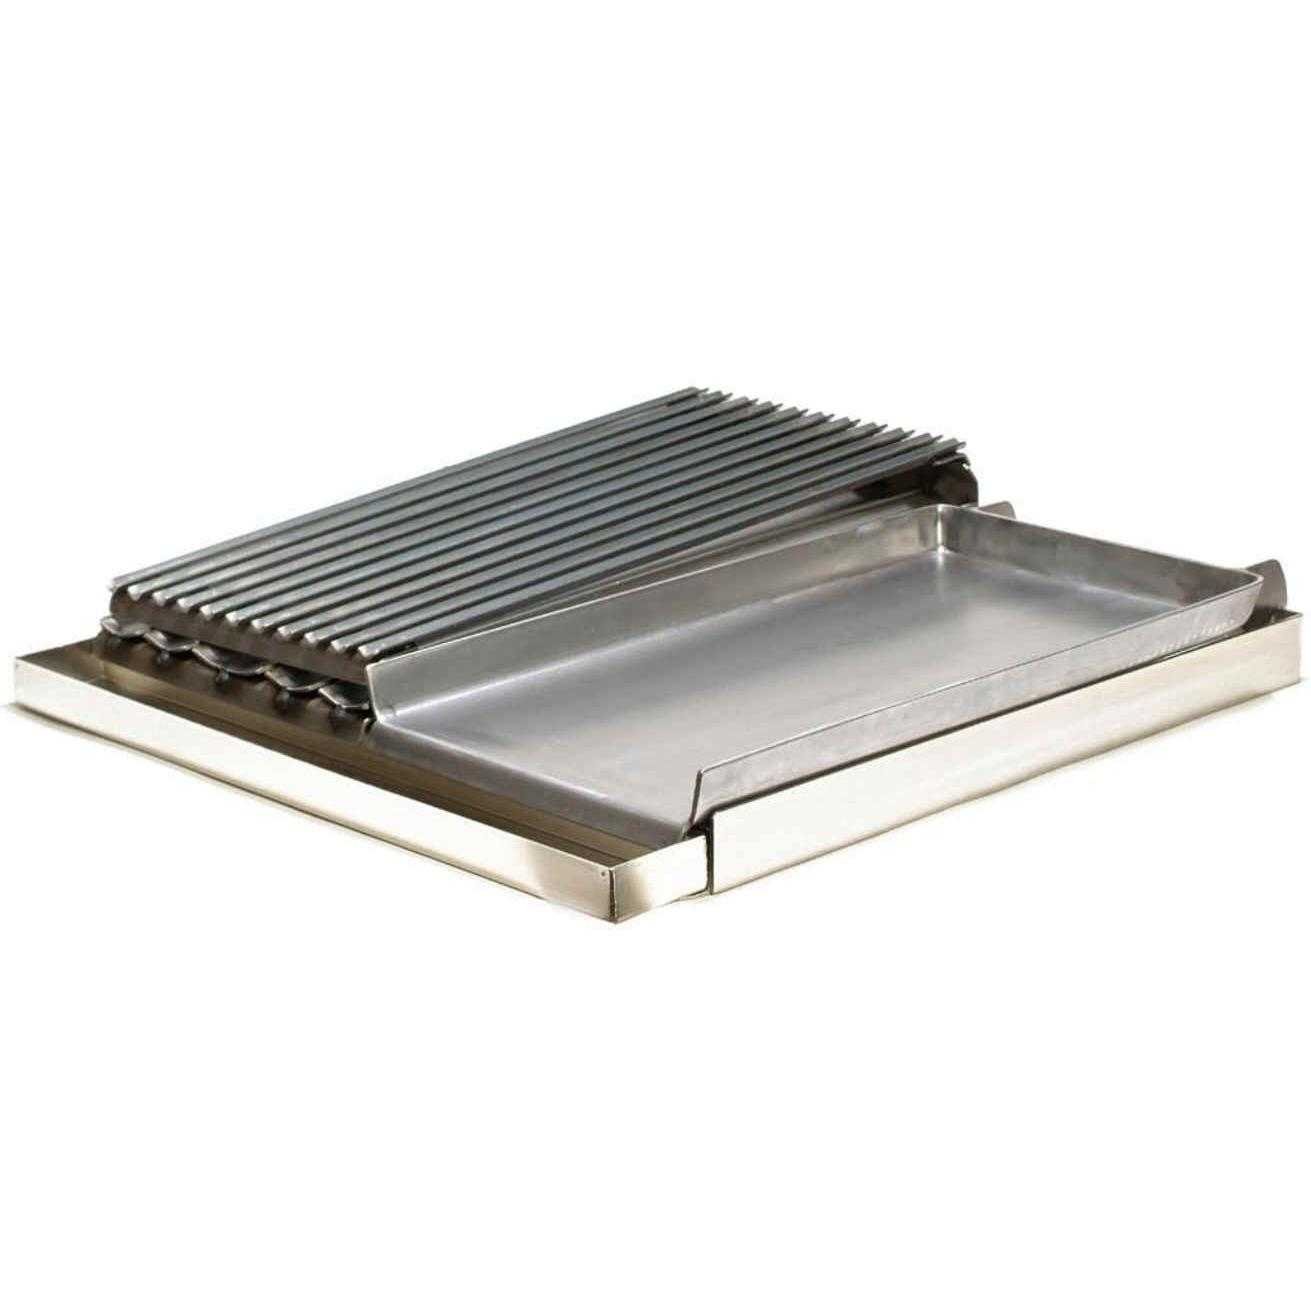 Rocky Mountain Cookware Rocky Mountain 24-inch Wide Range Top Side-by-side Griddle/Broiler Combo at Sears.com